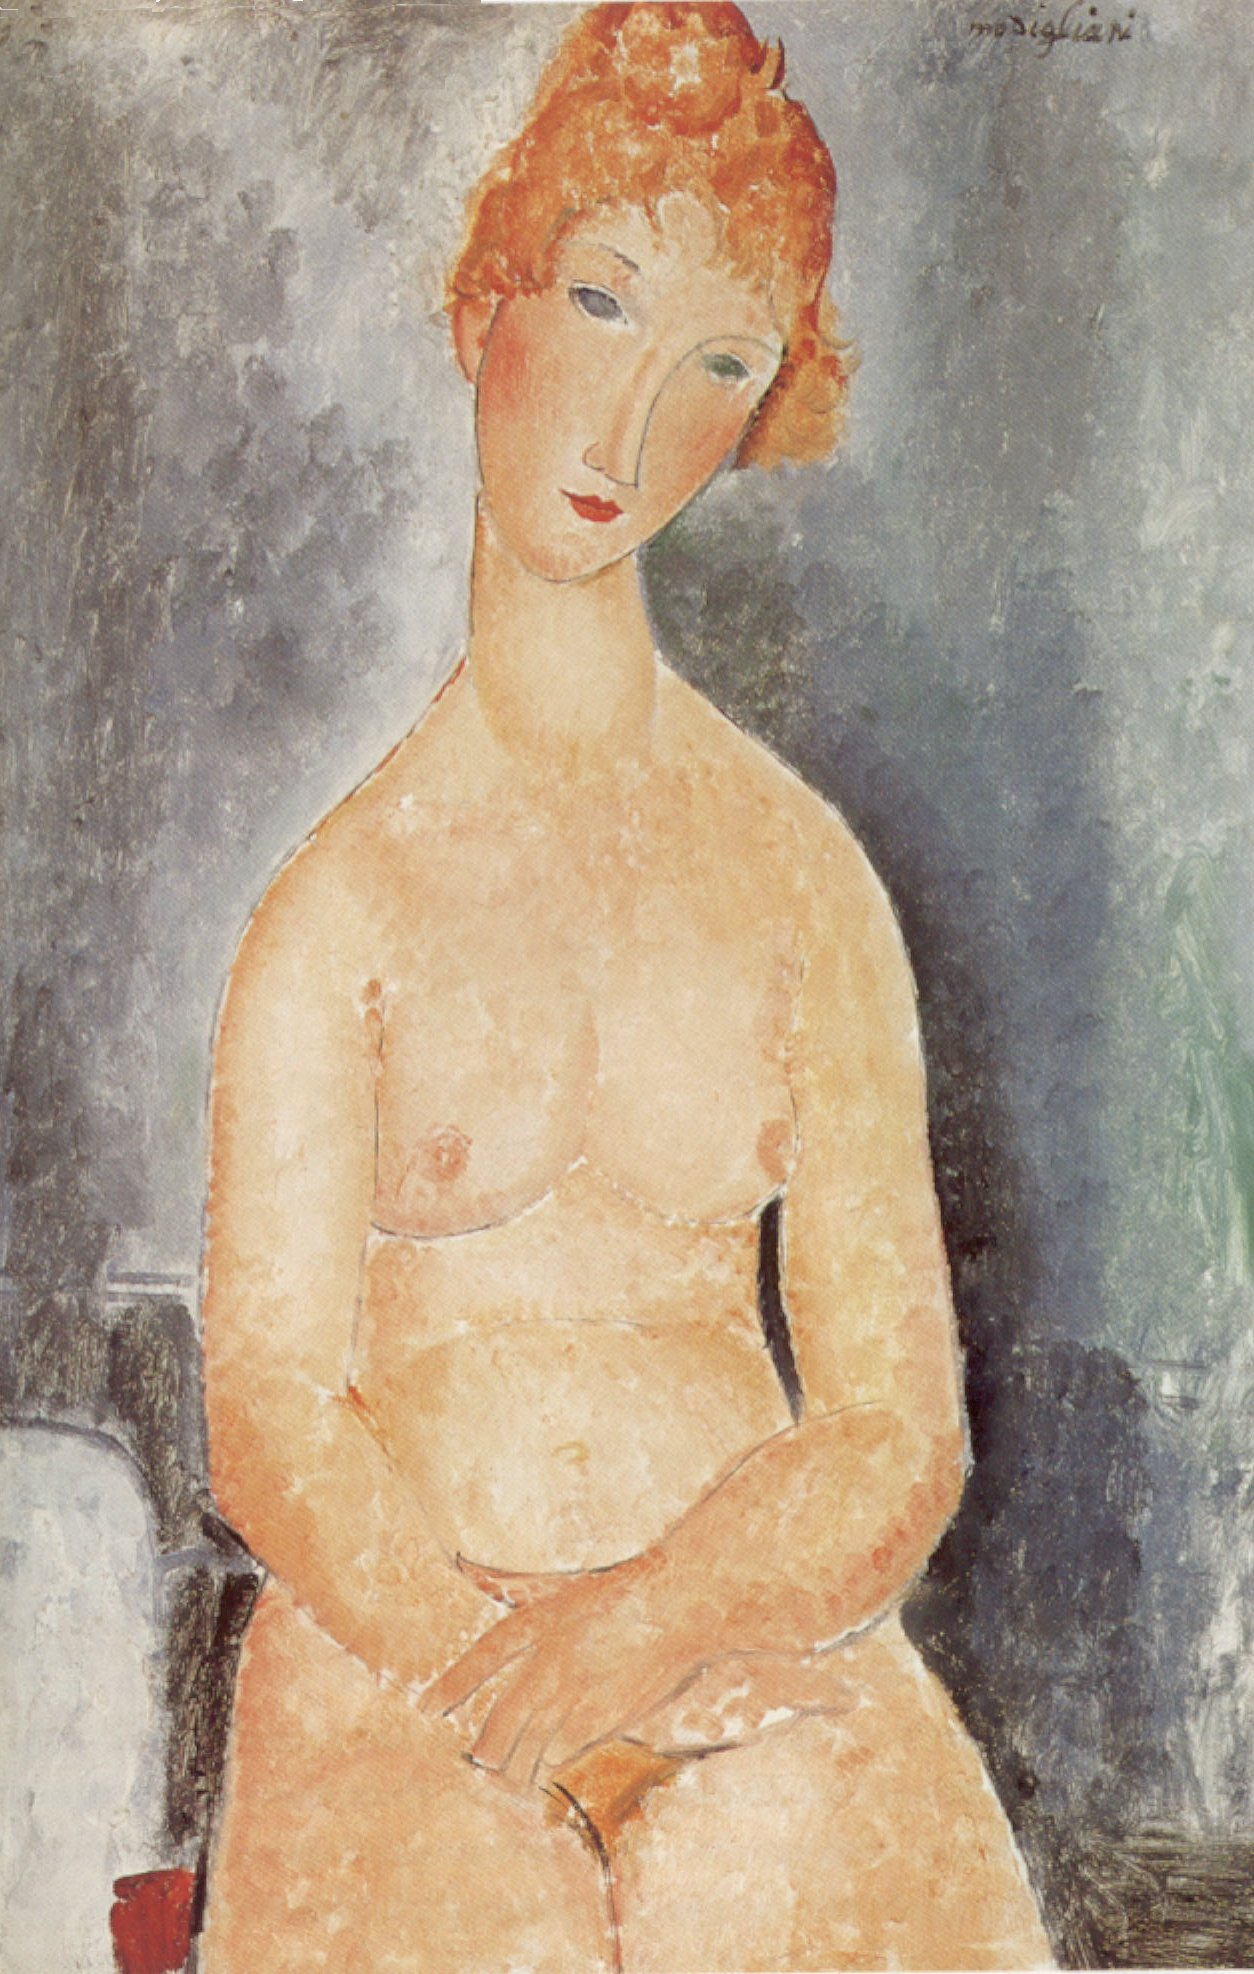 Amedeo Modigliani - Seated nude 1918